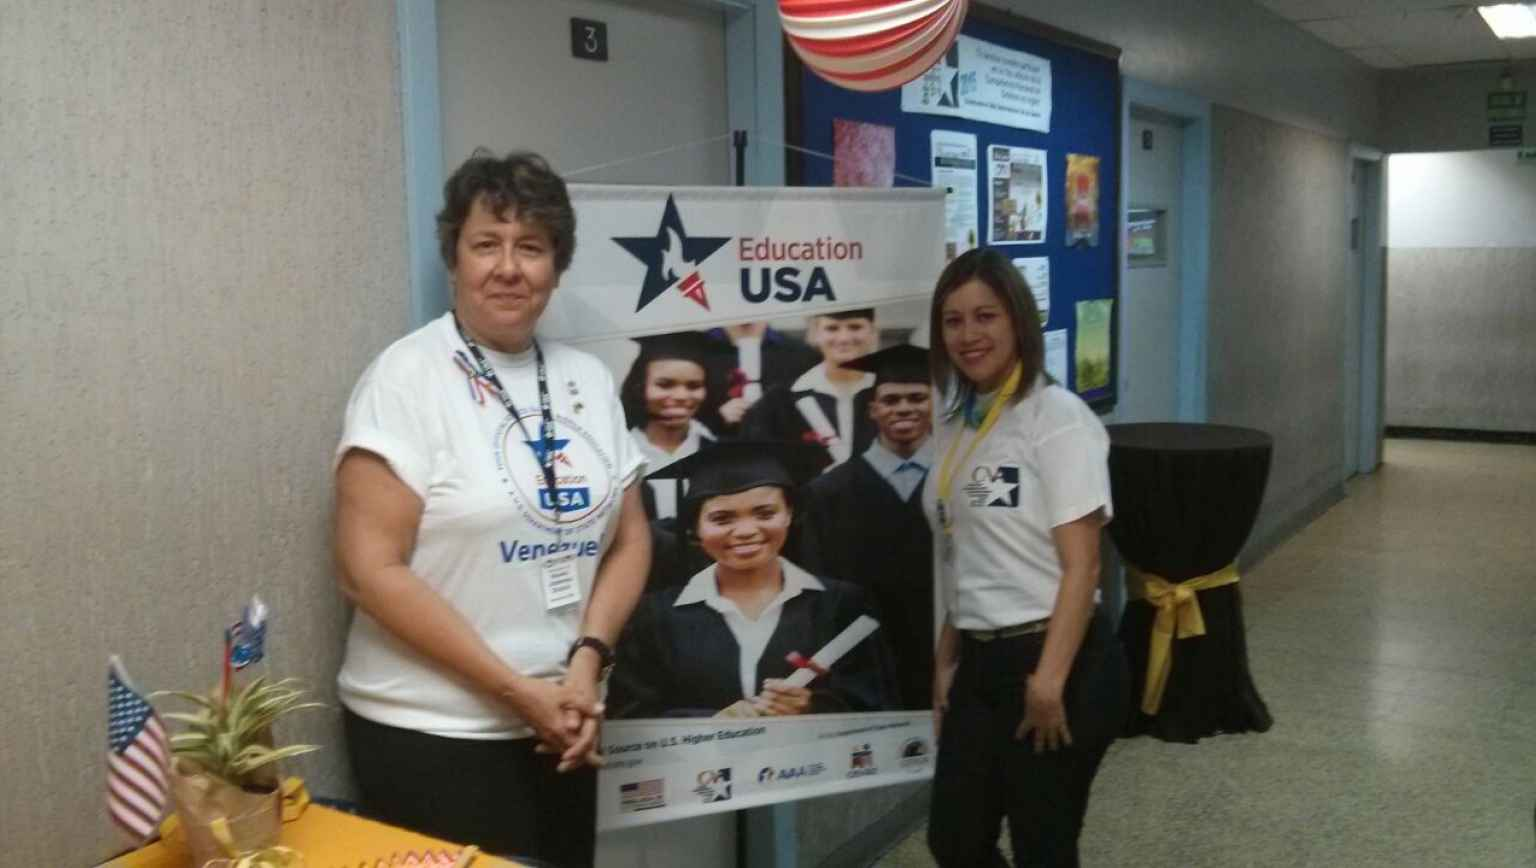 EducationUSA booth at Spelling Bee's celebration